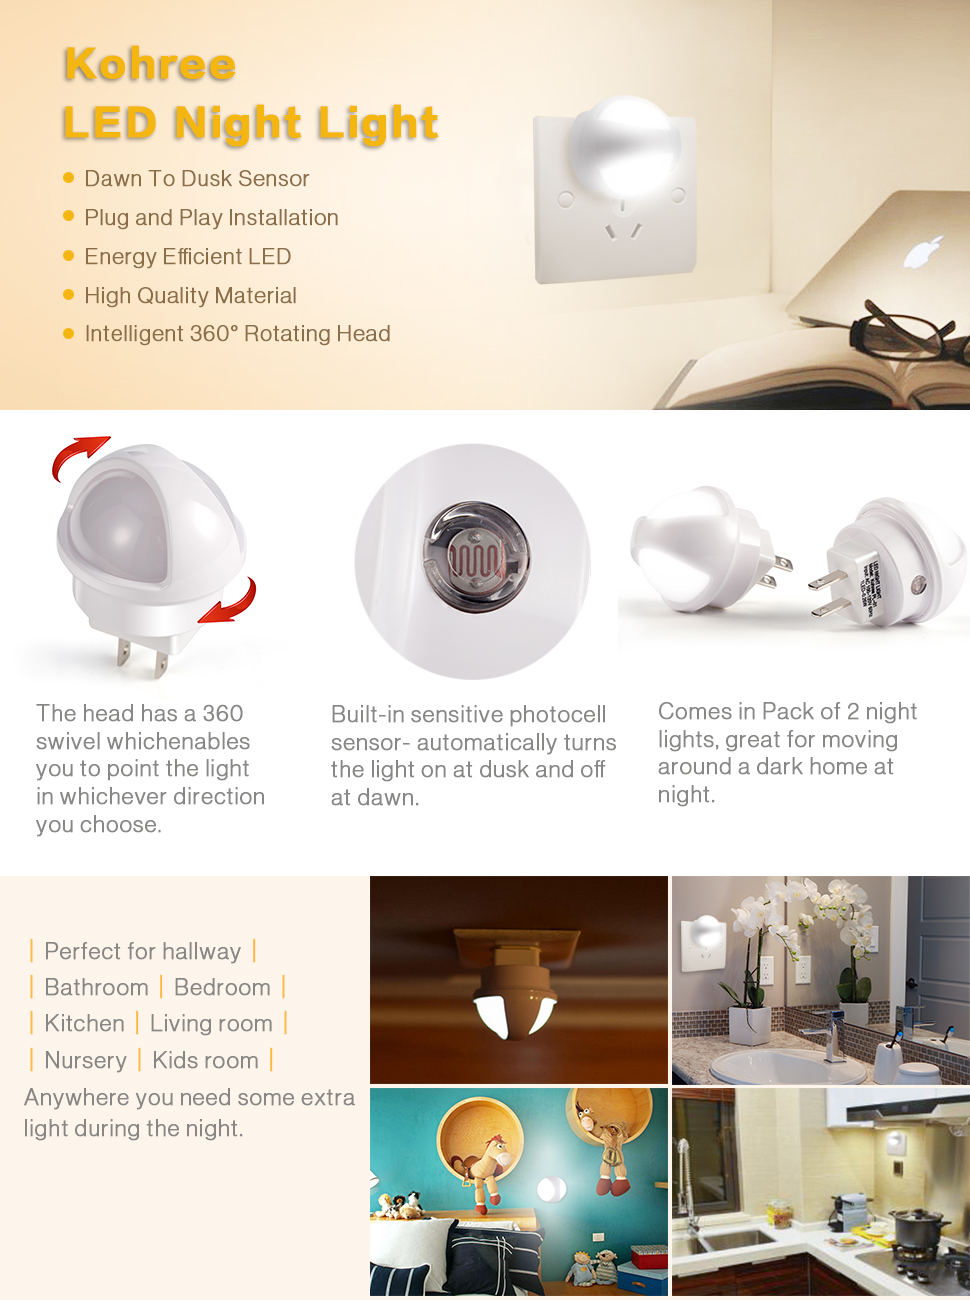 Night lights nursery - Let This Led Night Light Helps You Find Your Way At Night Say Good Bye To Bumping Into Stuff In The Dark With This Not Too Bright Not Too Dim Plug In